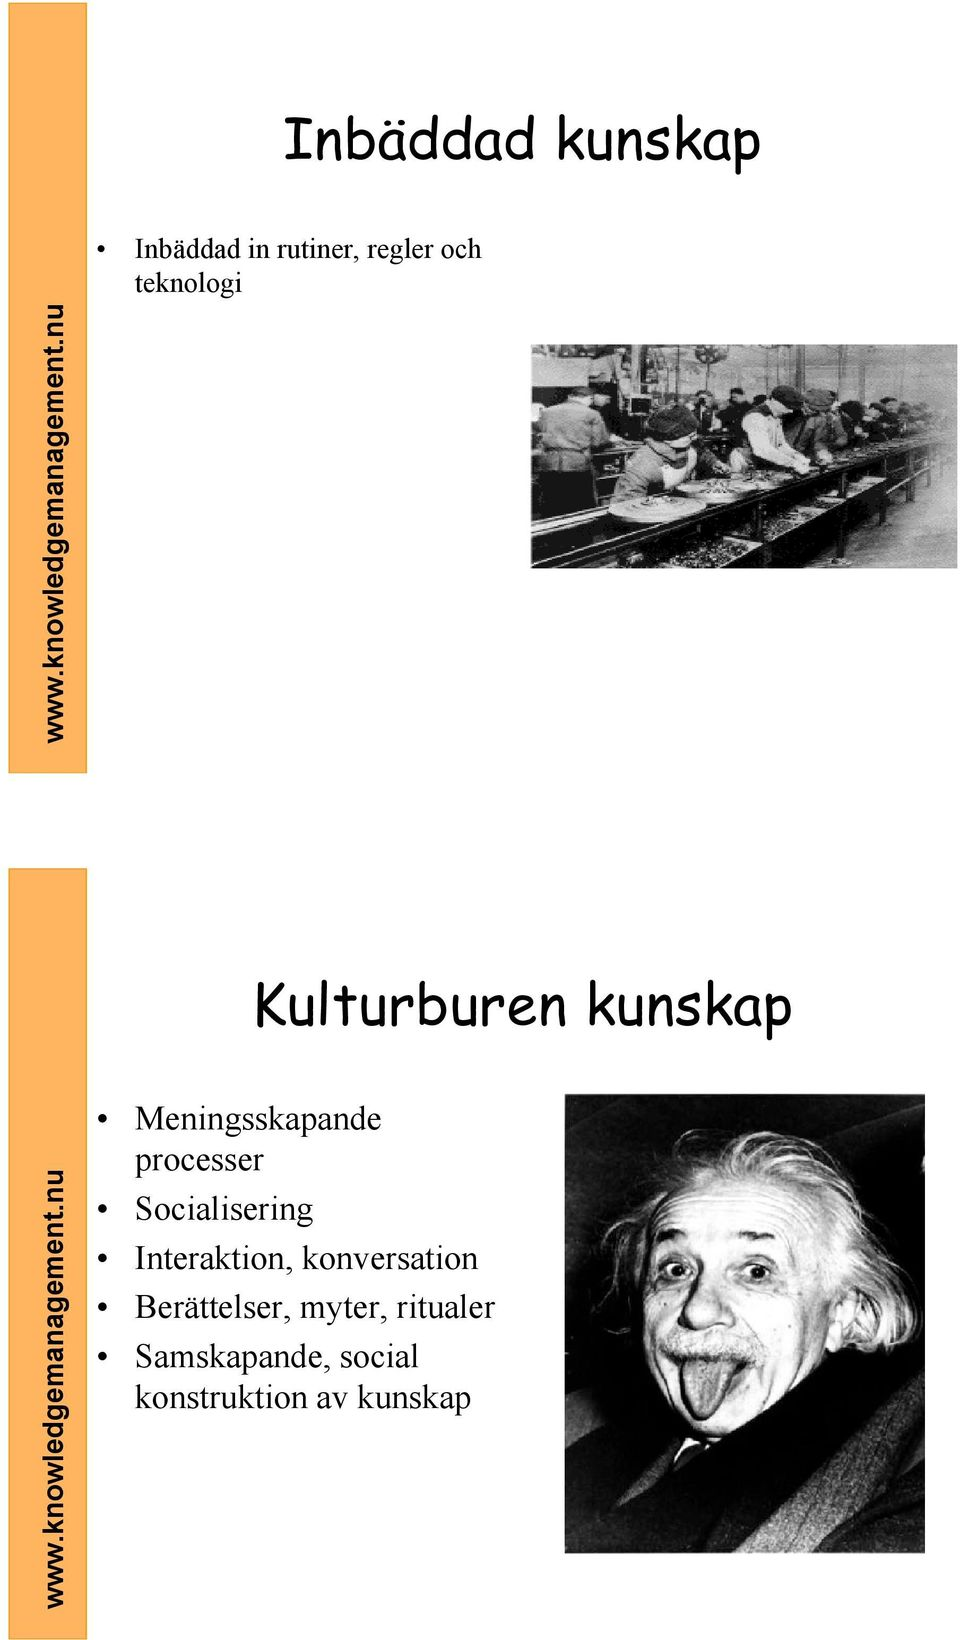 processer Socialisering Interaktion, konversation